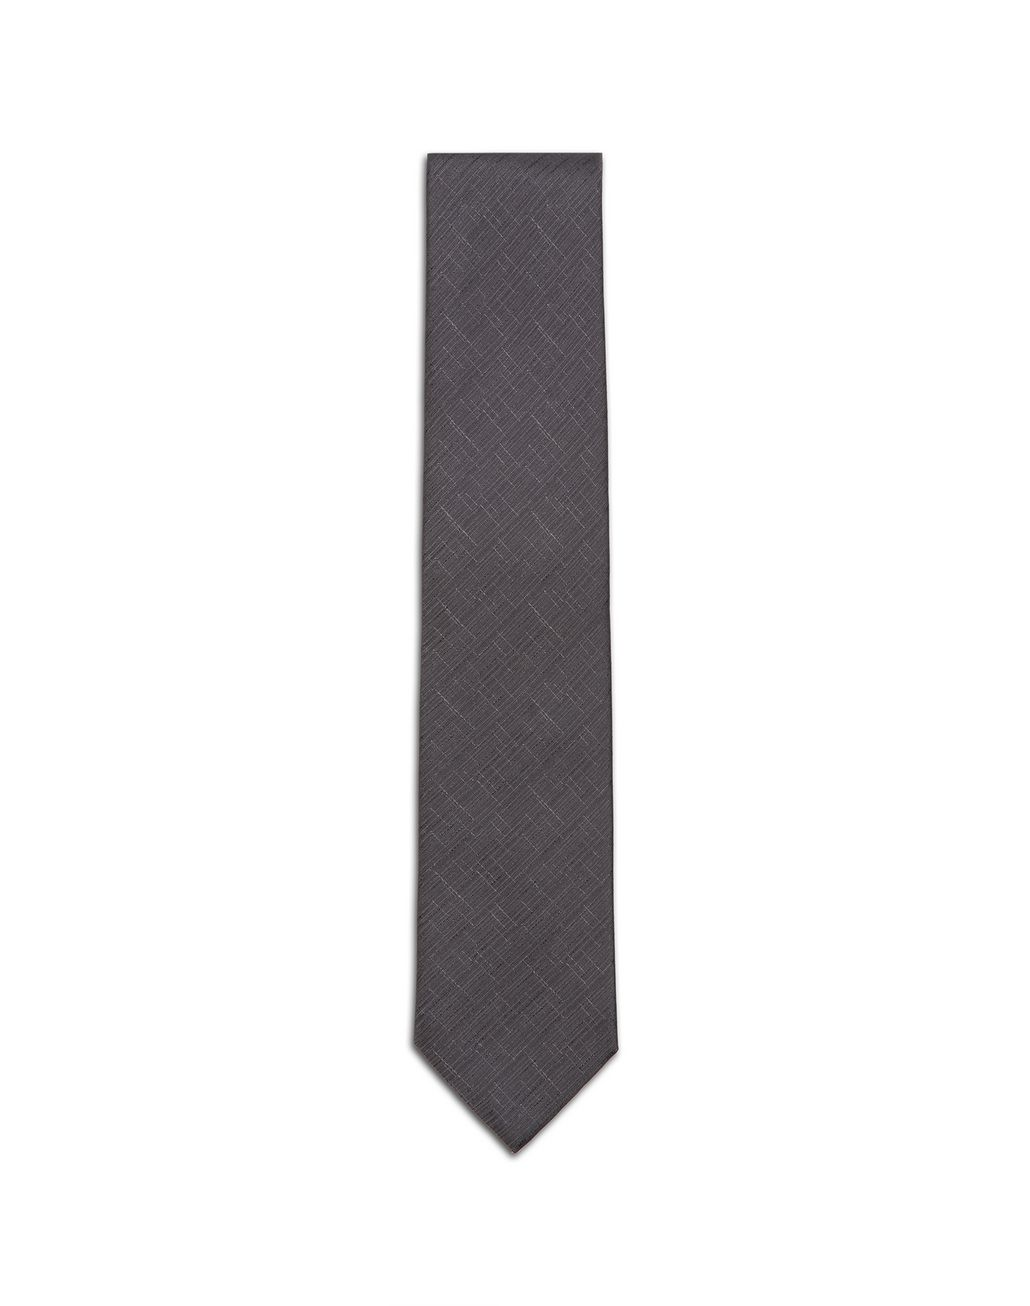 BRIONI Graphite Gray Shantung Tie Tie & Pocket Square Man f